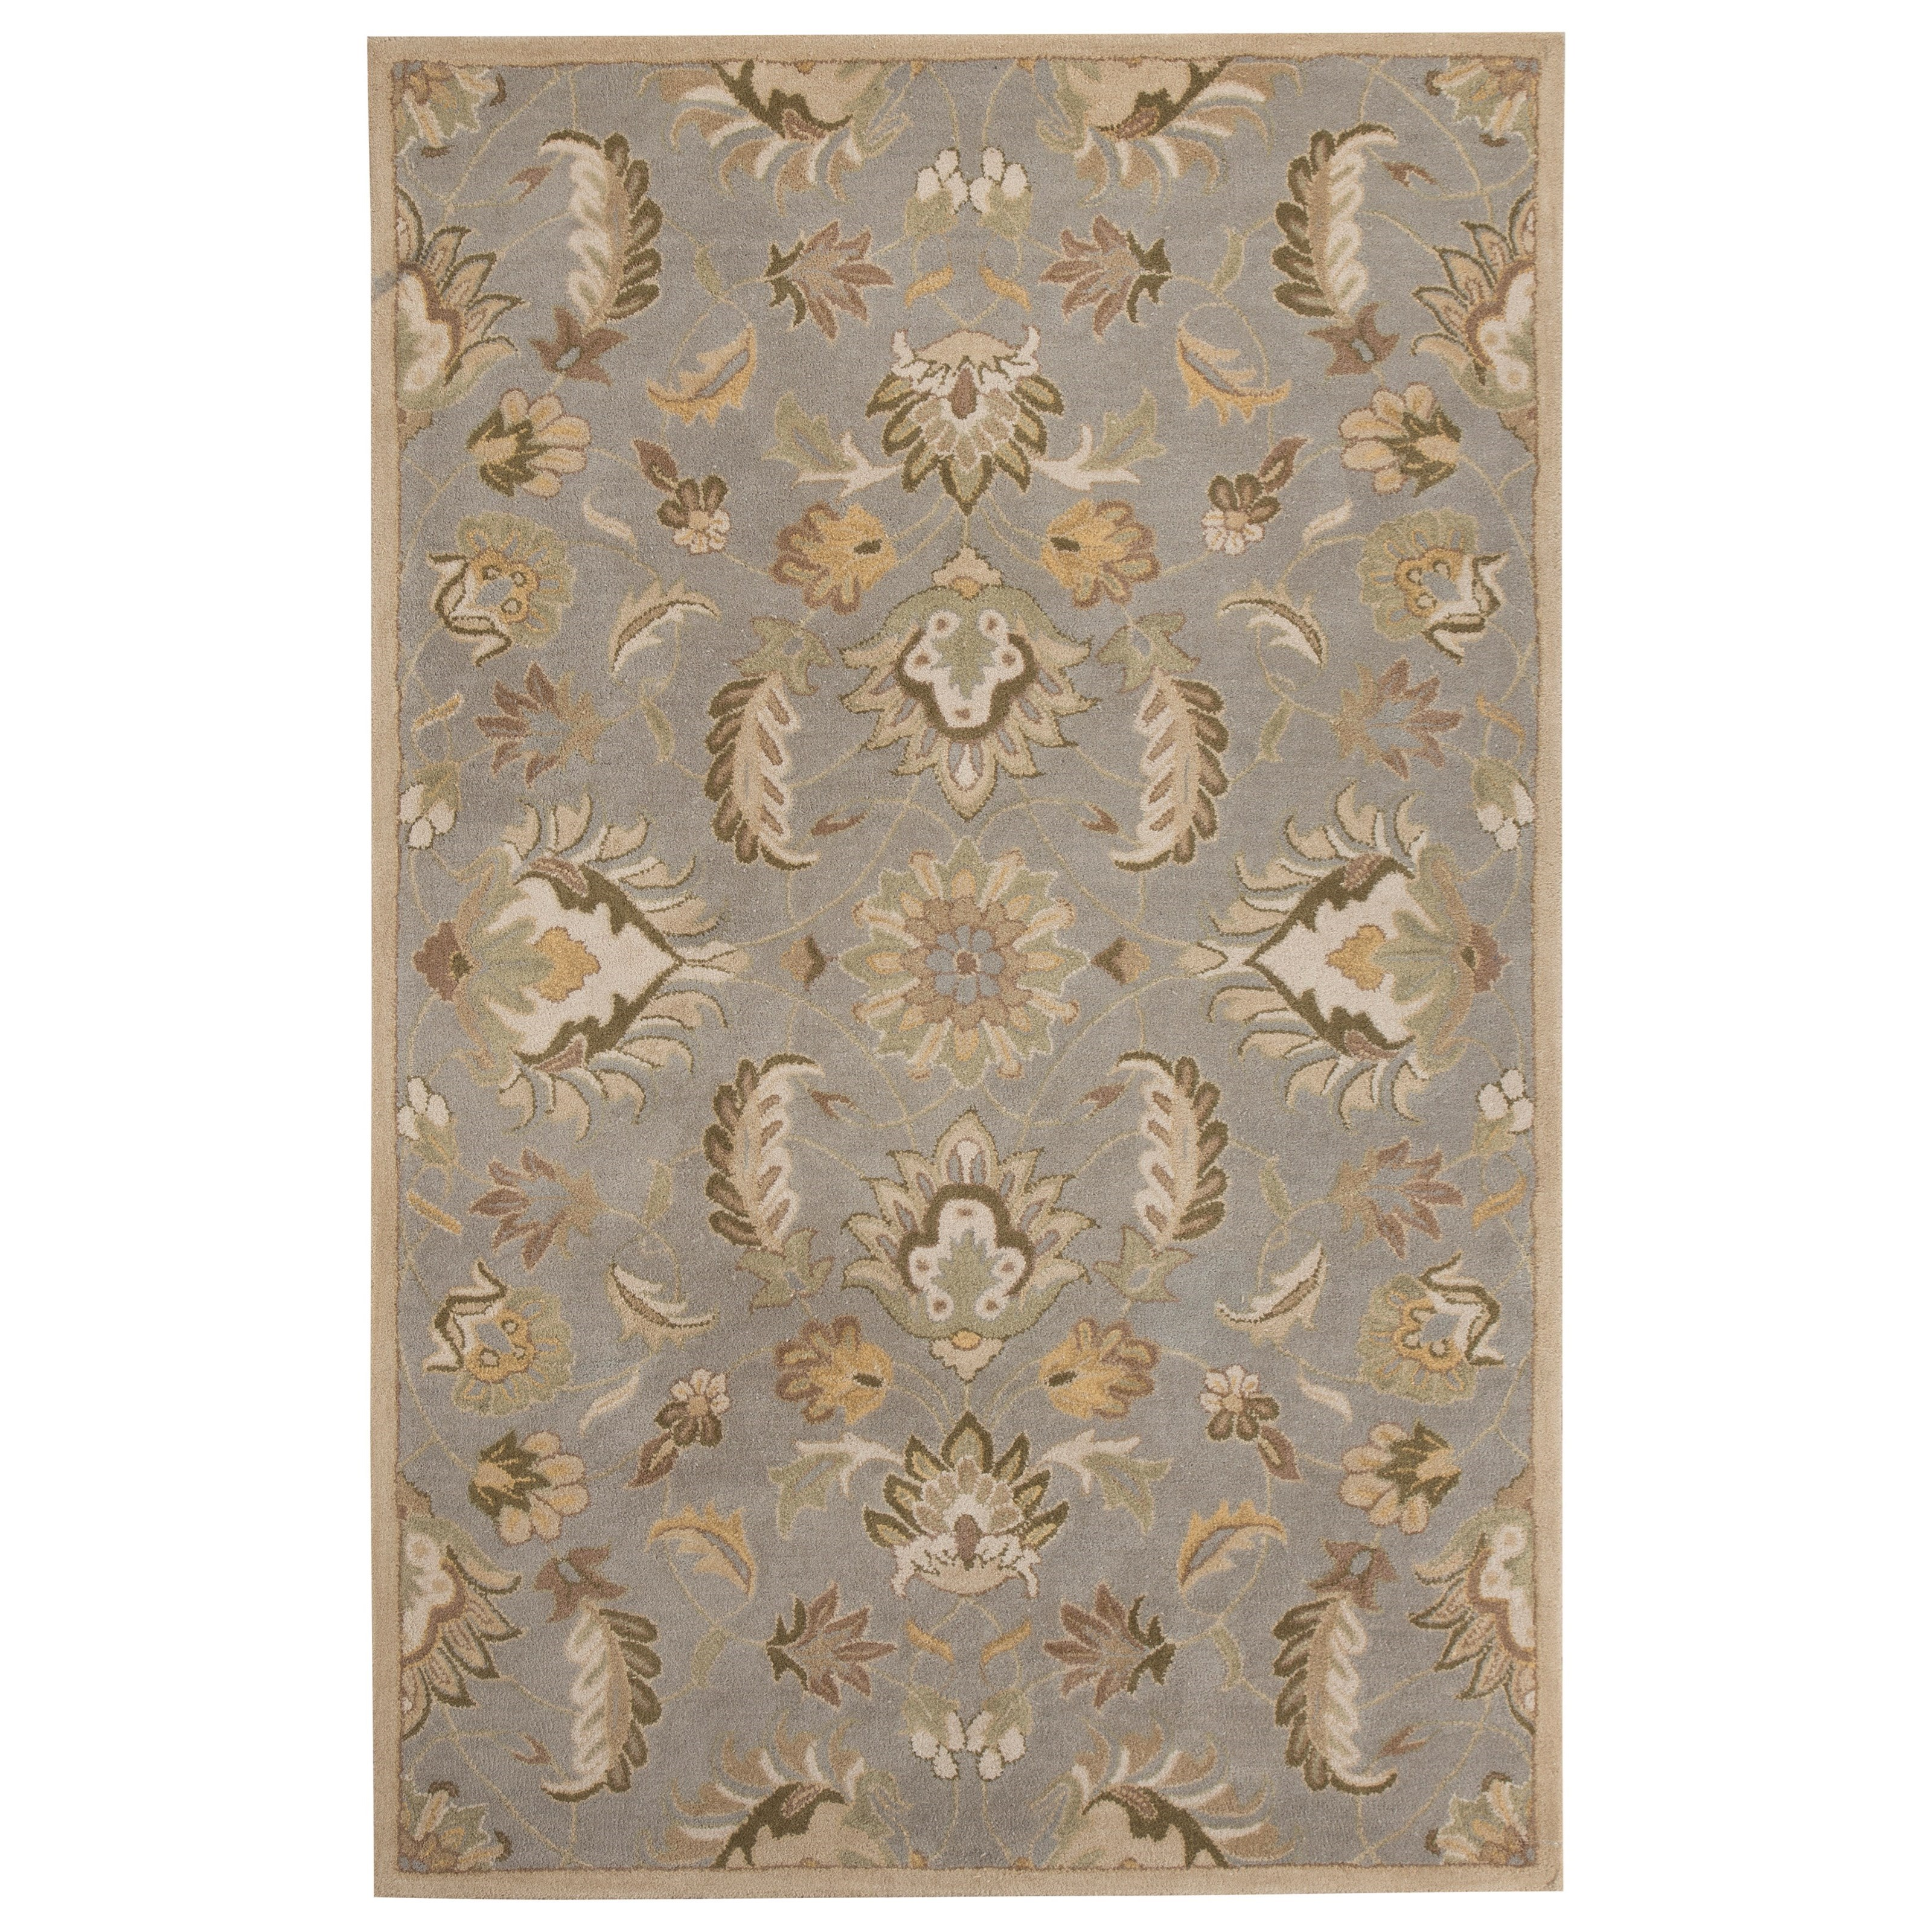 Signature Design by Ashley Transitional Area Rugs Flannigan Sage Green Medium Rug - Item Number: R401102